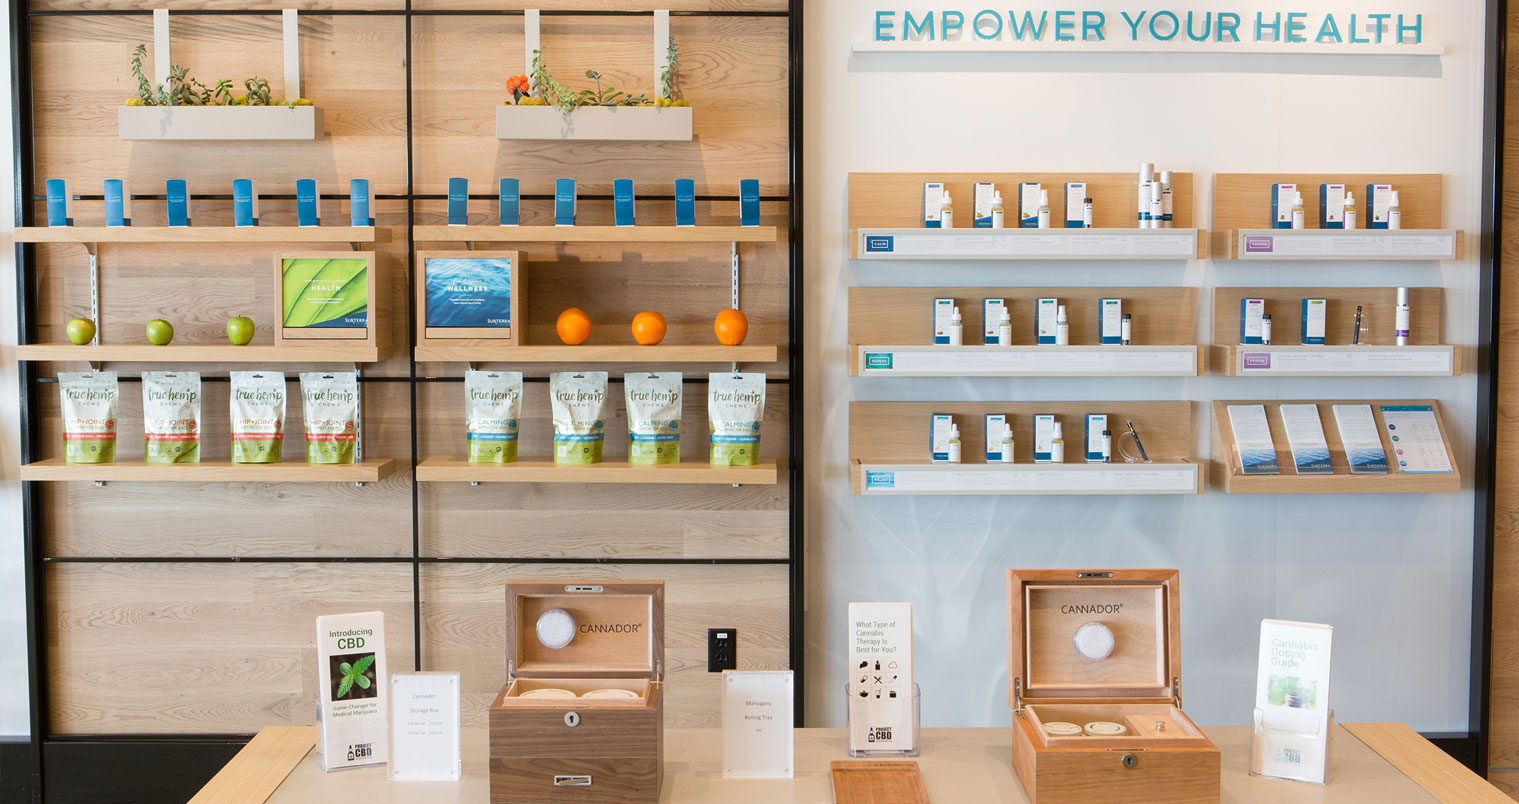 Surterra wall with products displayed on wood shelves and table in front